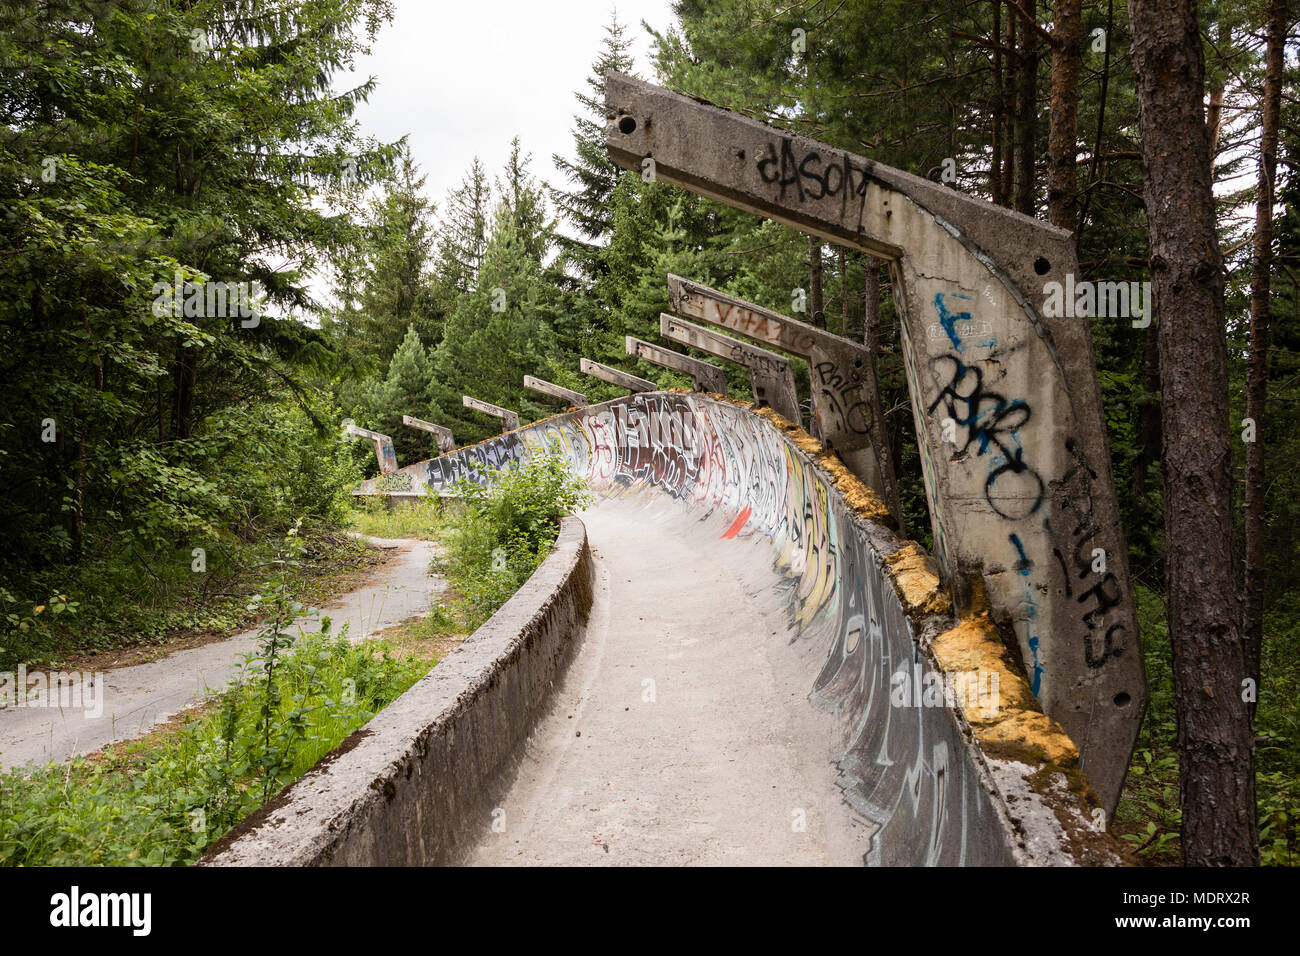 Sarajevo, Bosnia-Herzegovina, July 16 2017: The former 1984 Olympic bobsleigh and luge run in the mountains outside of Sarajevo - Stock Image